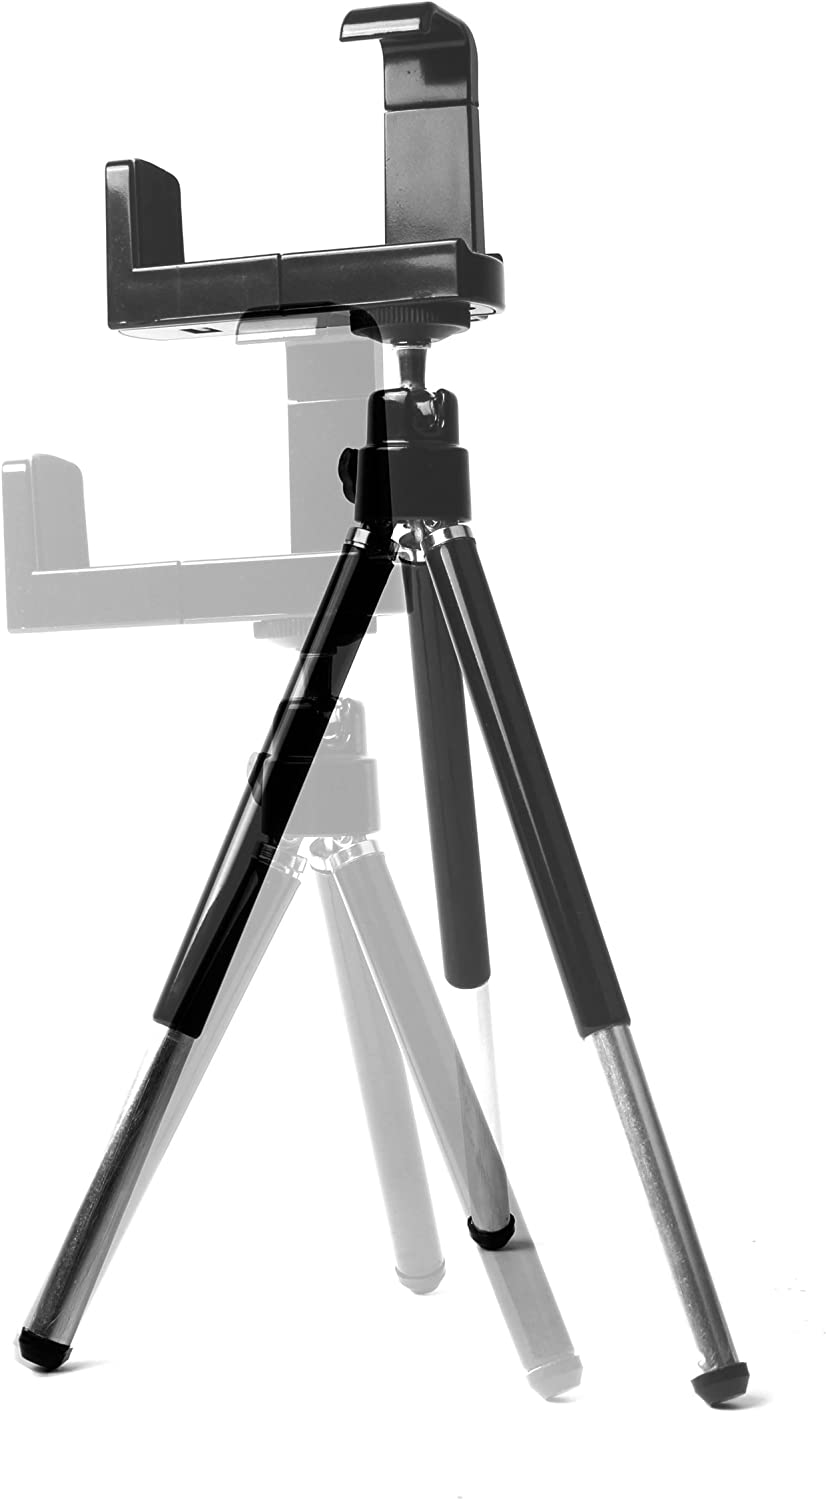 DURAGADGET 2-in-1 Extendable Travel Tripod Compatible with Panasonic Lumix DMC-TZ20 Lumix DMC-GF2 /& Lumix DMC-GF3